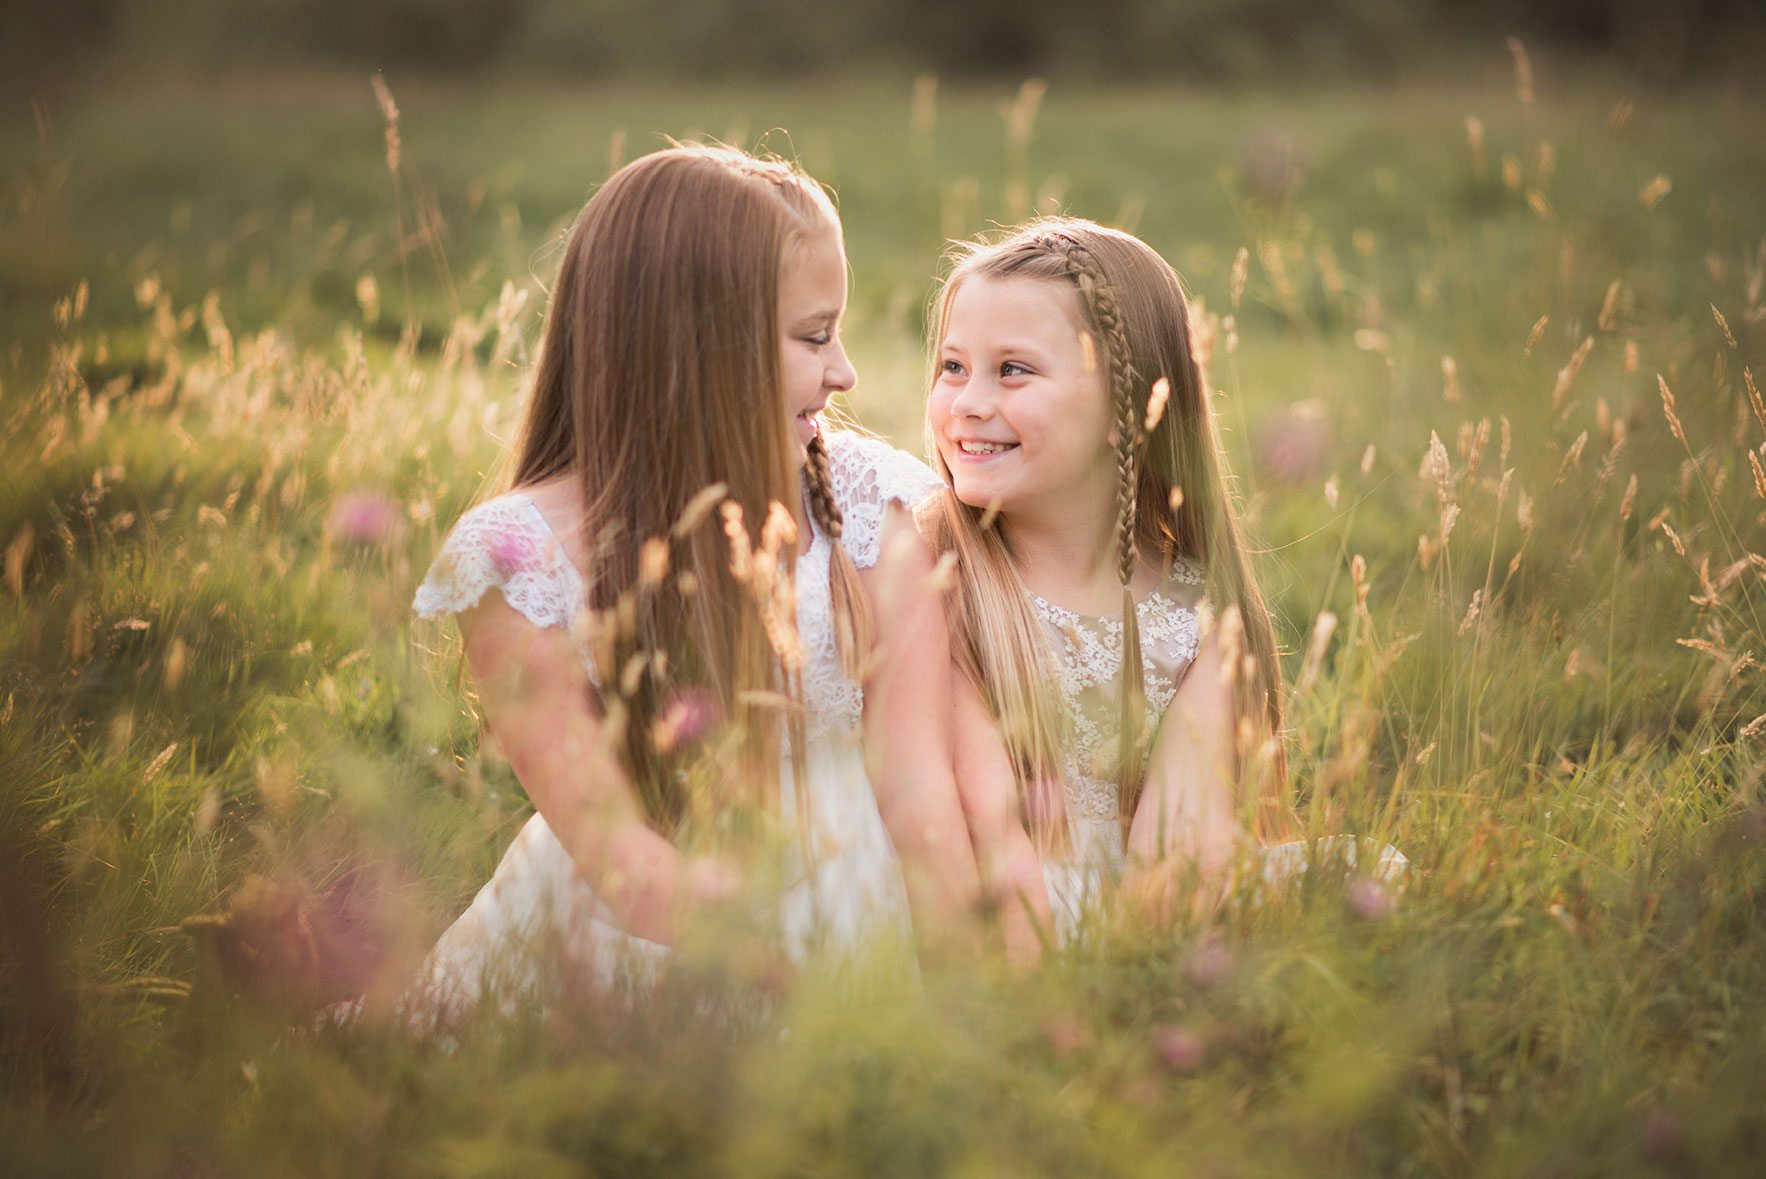 Girls sitting in golden light smiling at each other in field - Suffolk children's photographer